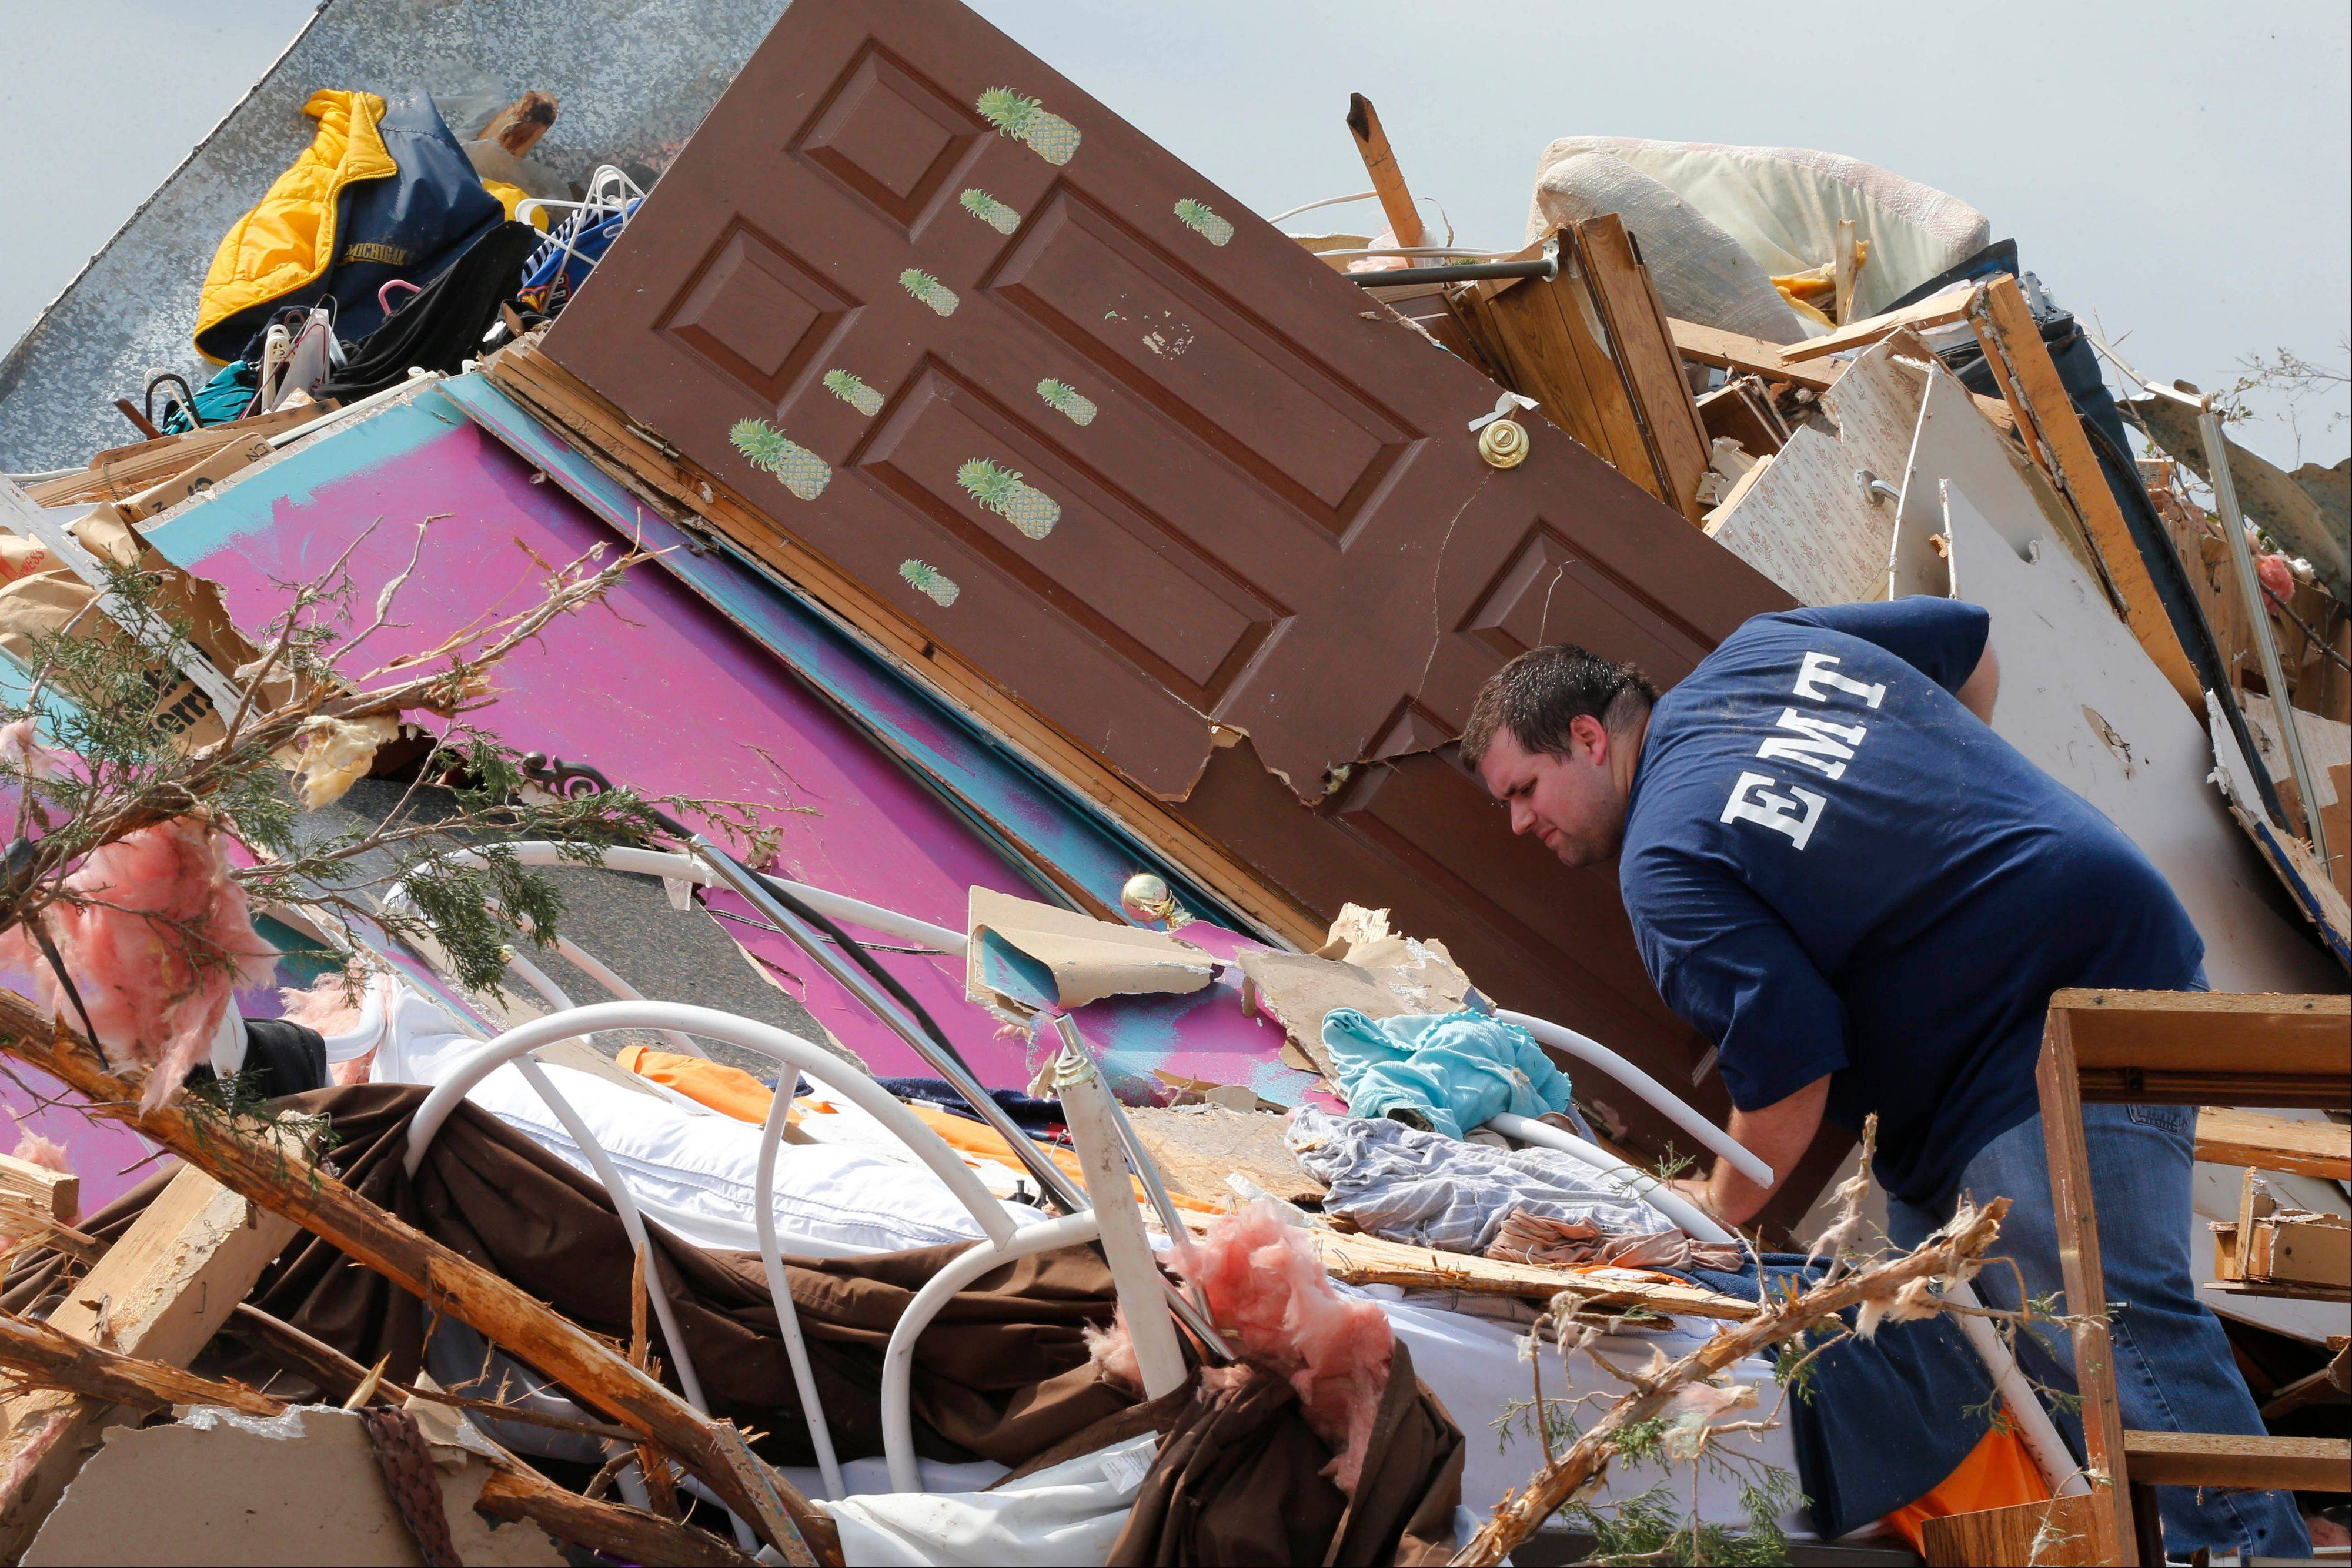 A resident who did not want to give his name, searches through the rubble of his mobile home in the Steelman Estates Mobile Home Park, destroyed by Sunday's tornado, near Shawnee, Okla., Monday, May 20, 2013. The tornado that slammed into Oklahoma on Sunday is now blamed for two deaths. Authorities say two men in their 70s have been found dead in or near a mobile home park outside of Shawnee.